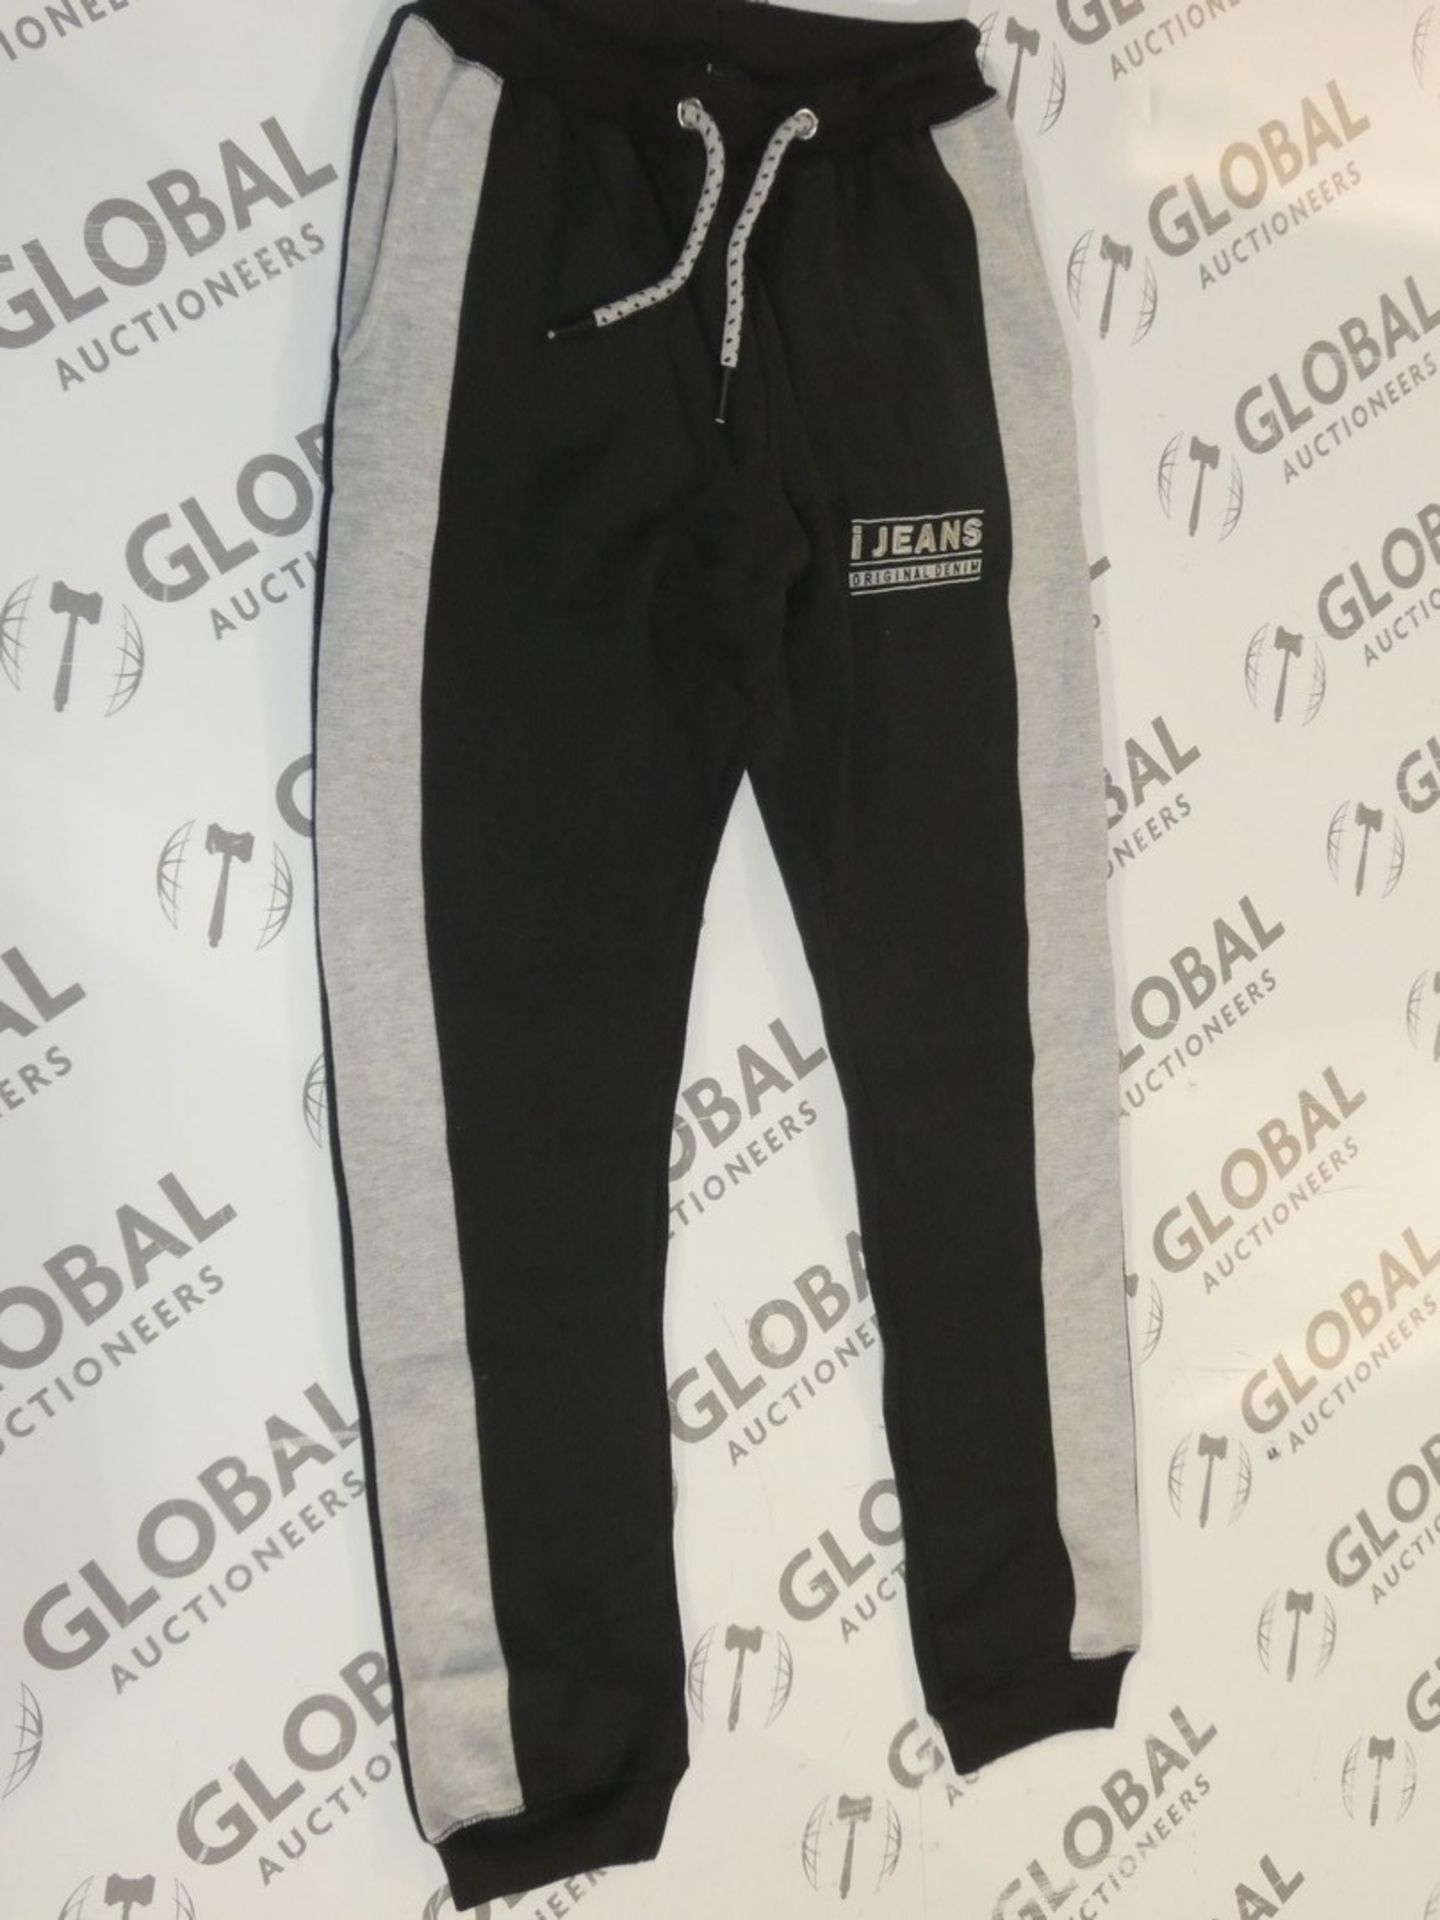 Lot 165 - Assorted Brand New Pairs Of Ijeans Original Denim Black Lounging Pants In Assorted Sizes RRP £25 A